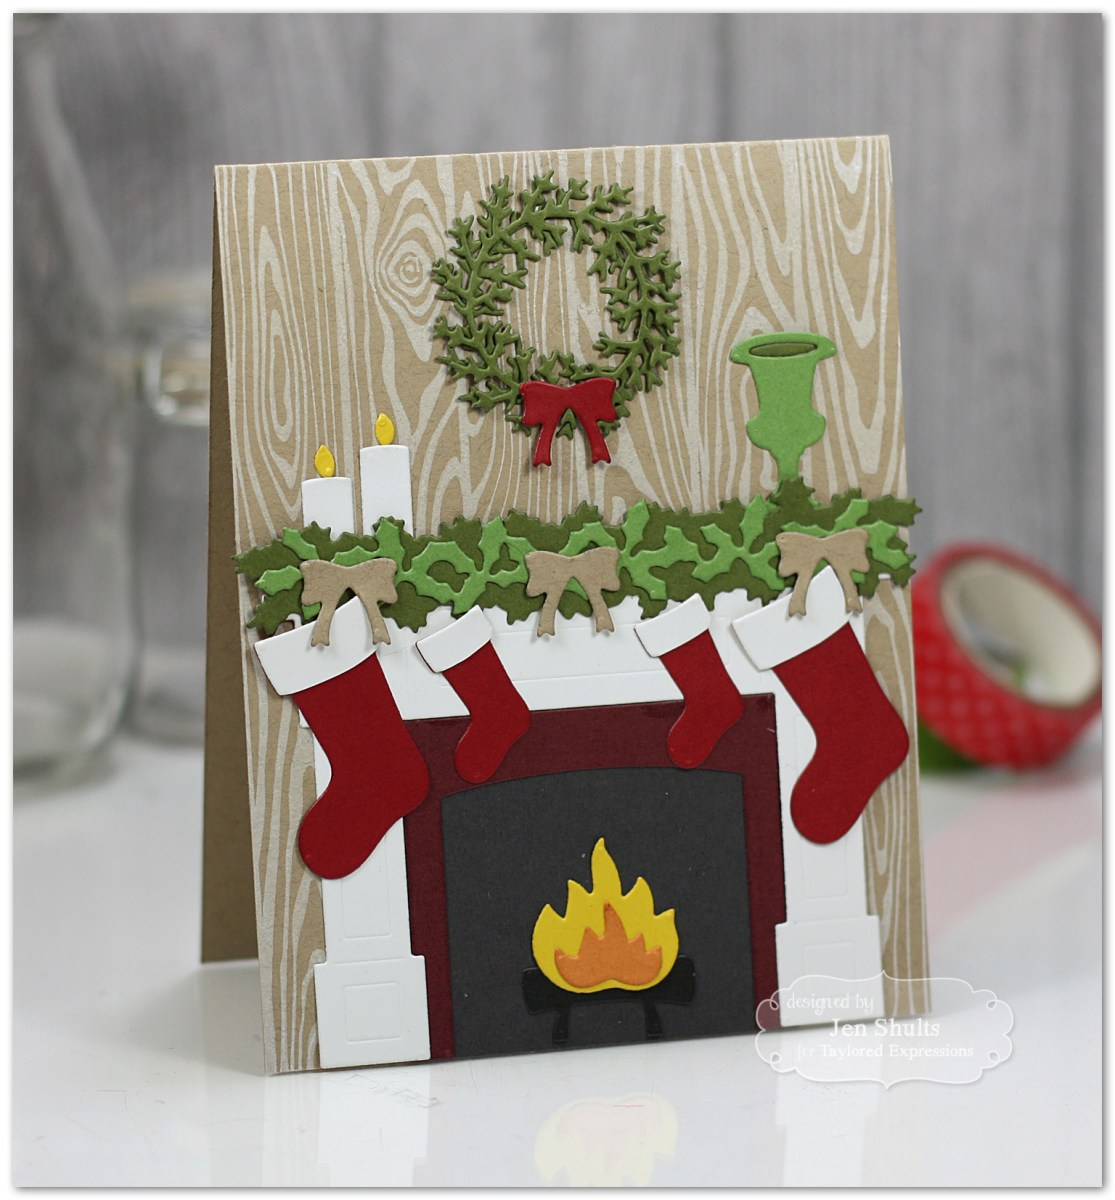 TE Sneak Peeks: By The Chimney With Care